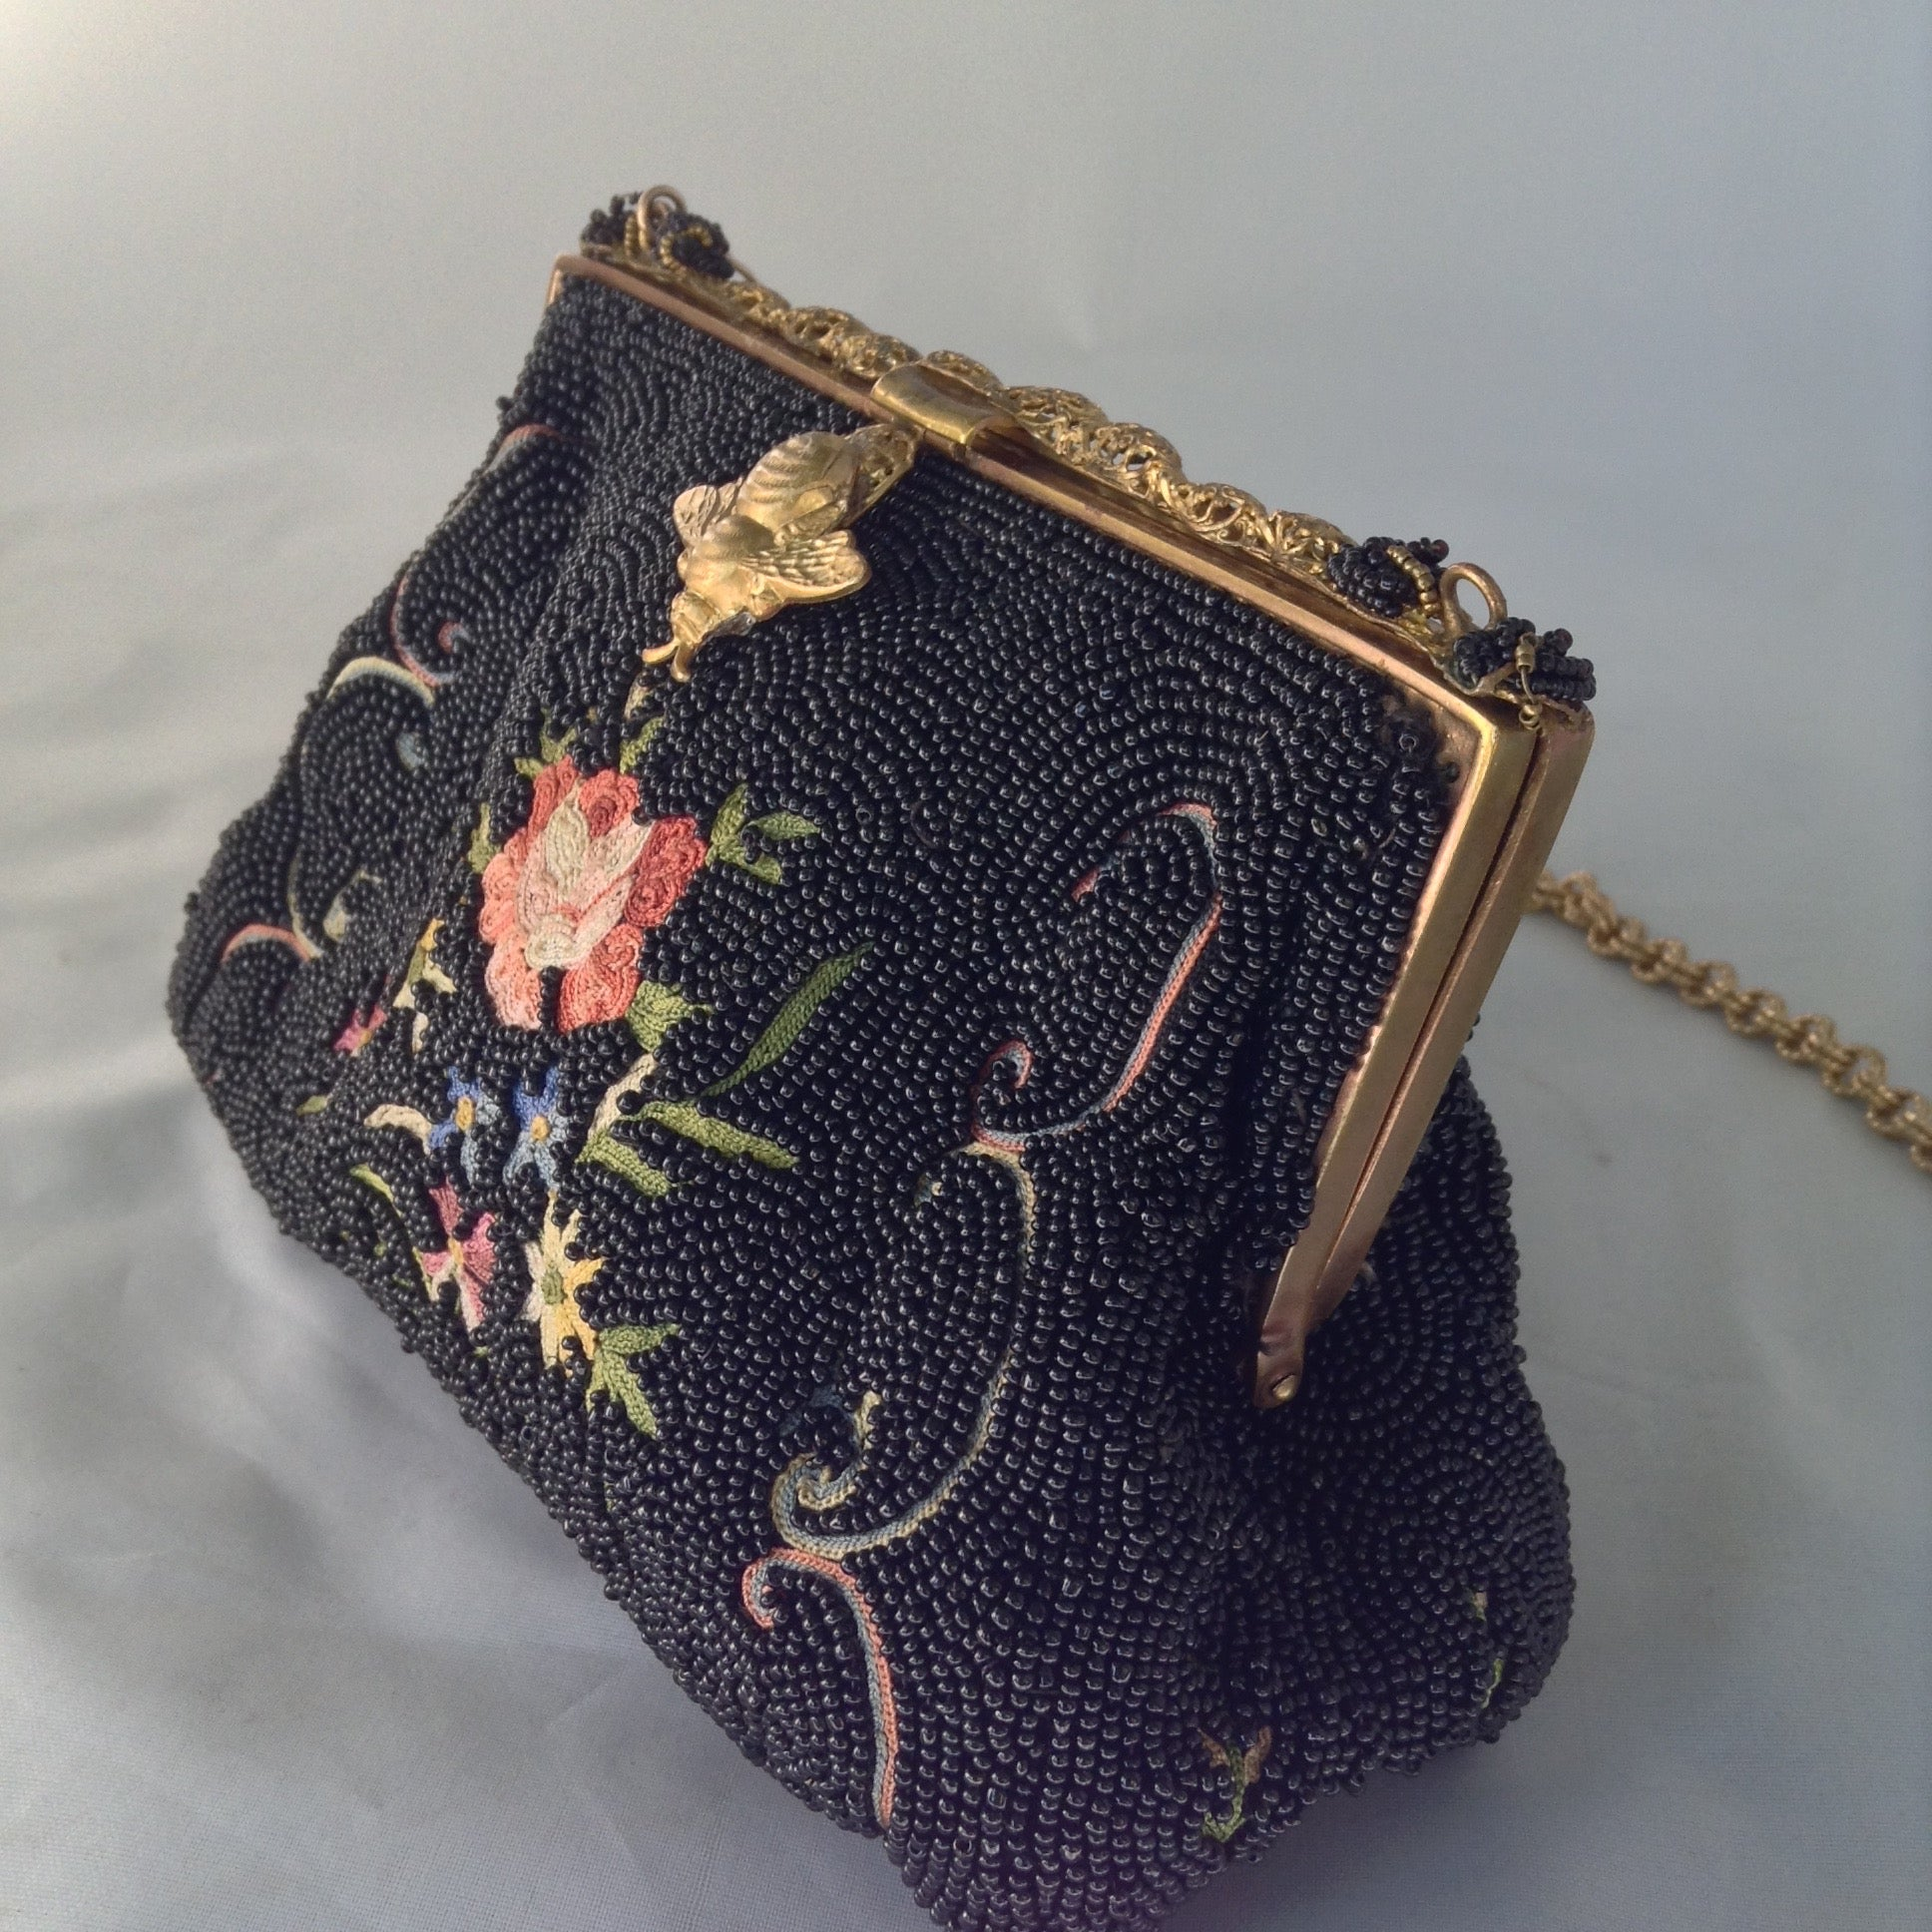 1930's French, Black Hand-Beaded Evening Purse, Petit-Point Multi-Colored Hand-Embroidered Flowers, Golden Bee